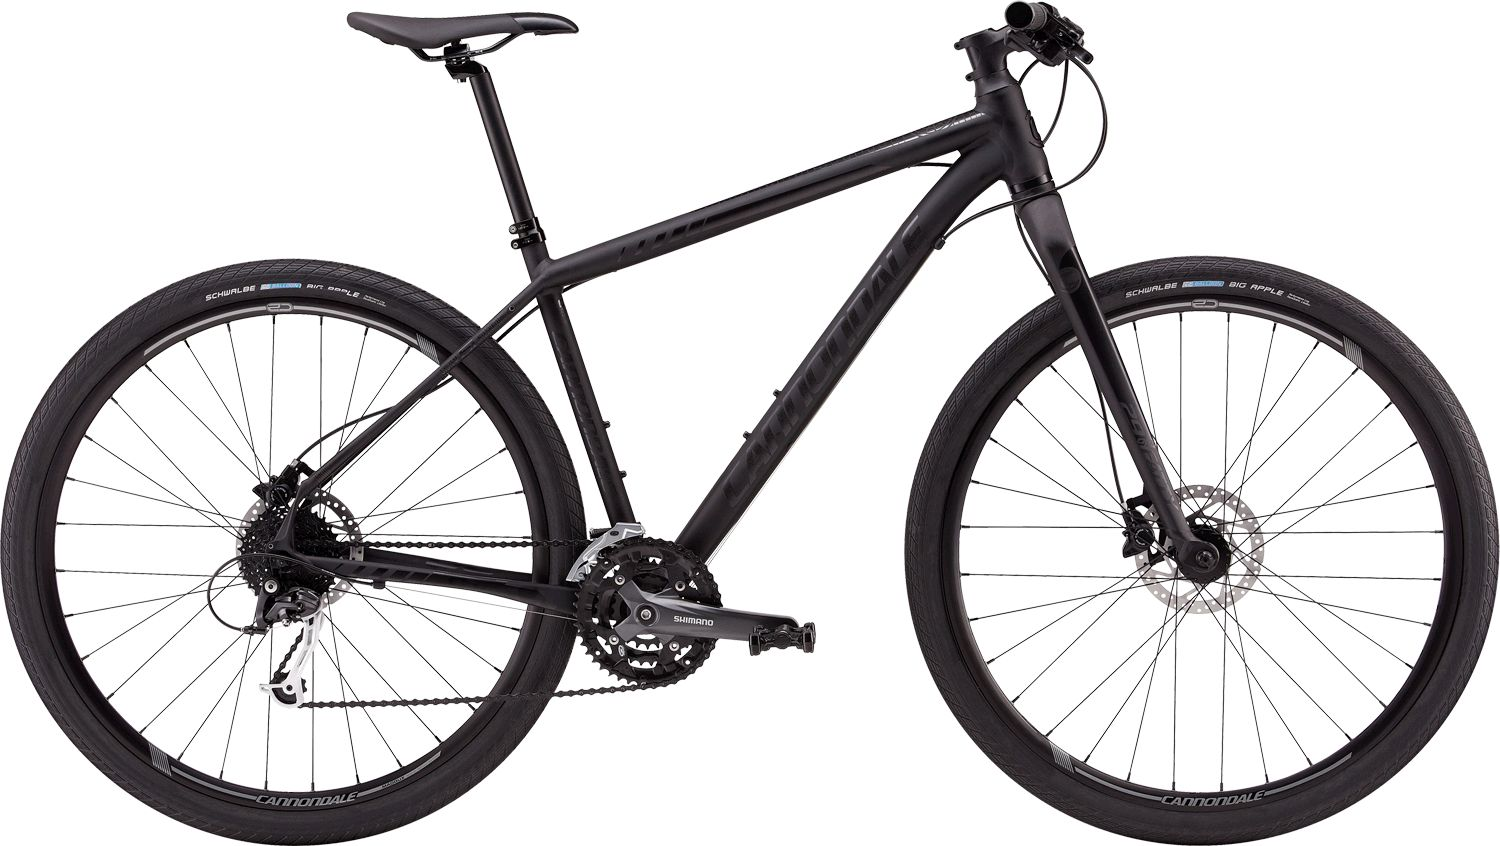 Cannondale BAD BOY 29ER 2013 review - The Bike List